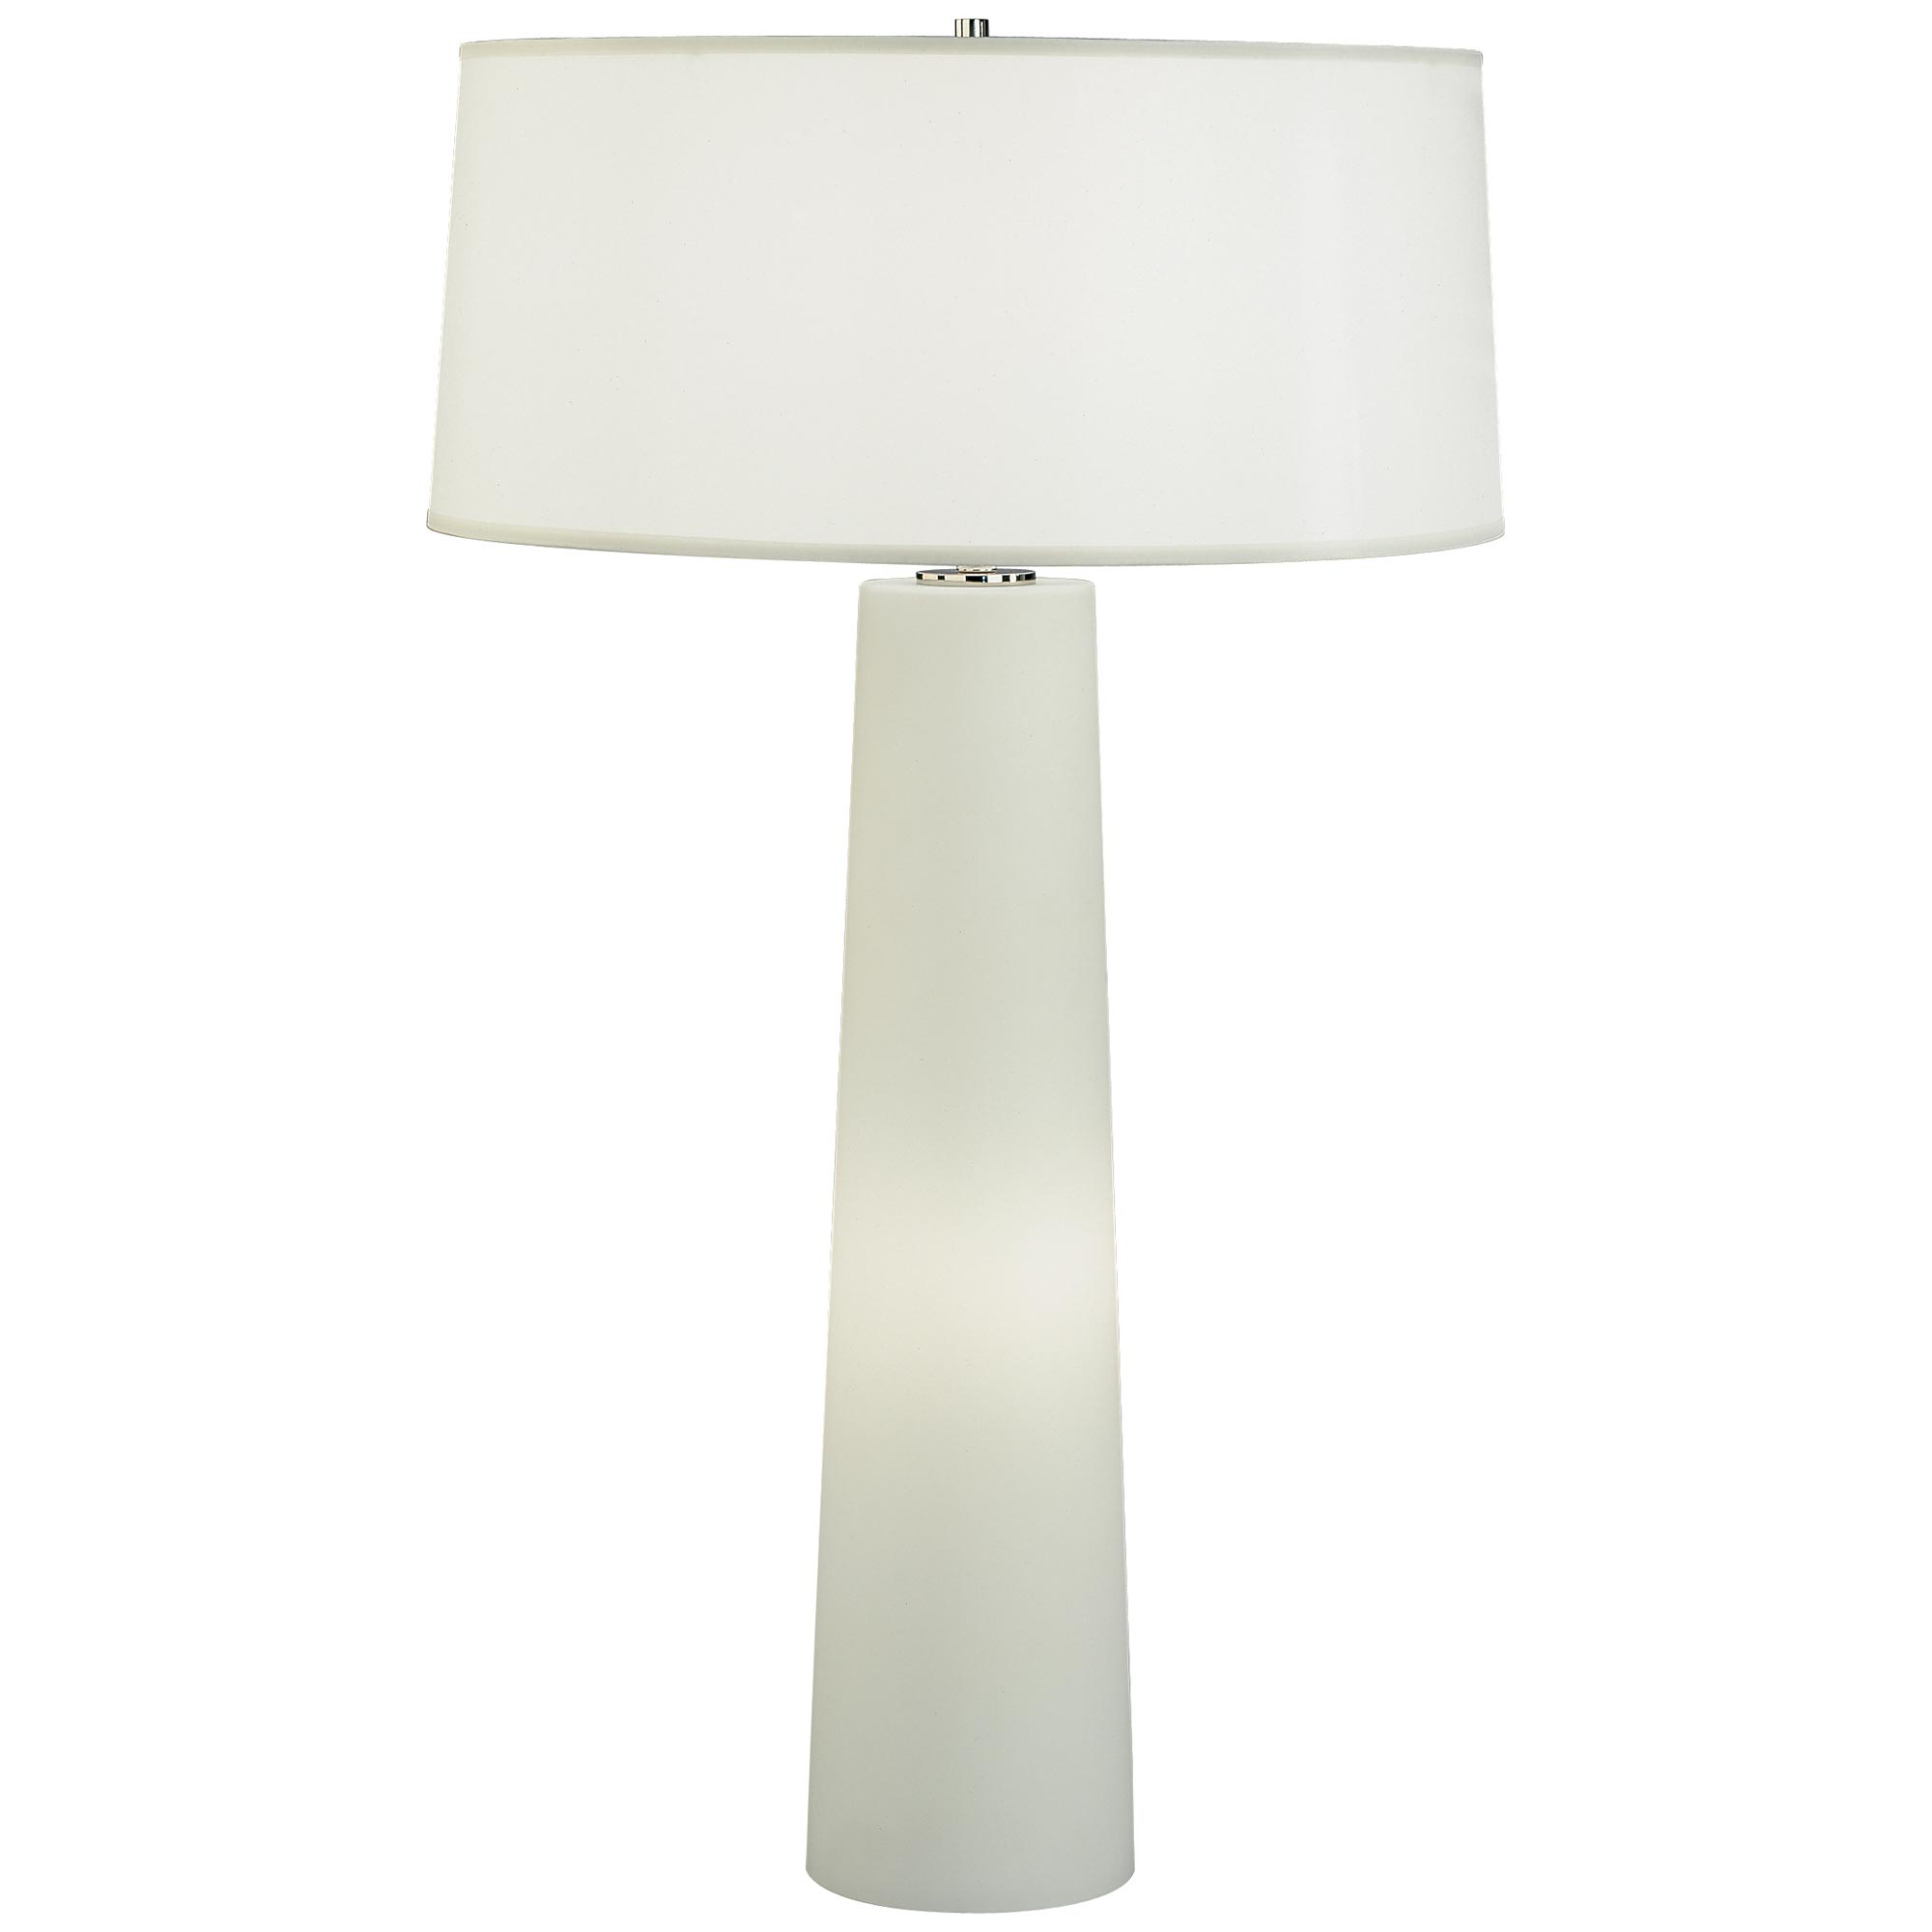 table lamp wnightlight by robert abbey  raw - olinda table lamp wnightlight by robert abbey  raw